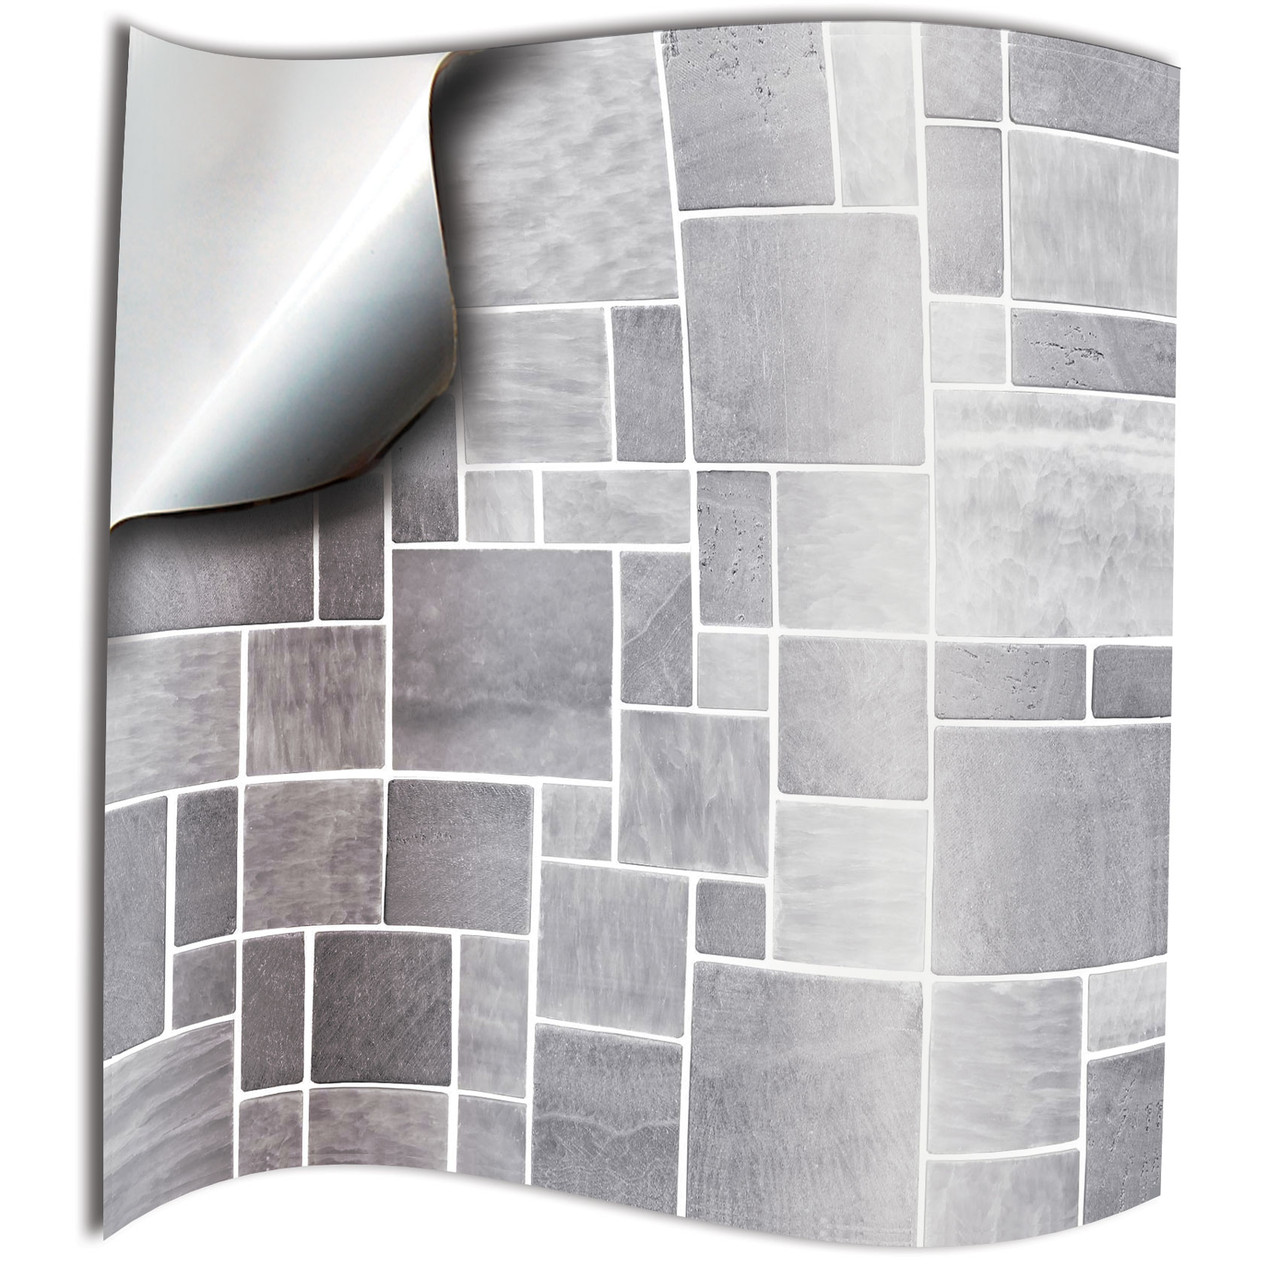 24 Light Grey Printed In 2d Kitchen Bathroom Tile Stickers For 6 Inches 15cm Square Tiles Tp 31 Direct Supply No Middleman